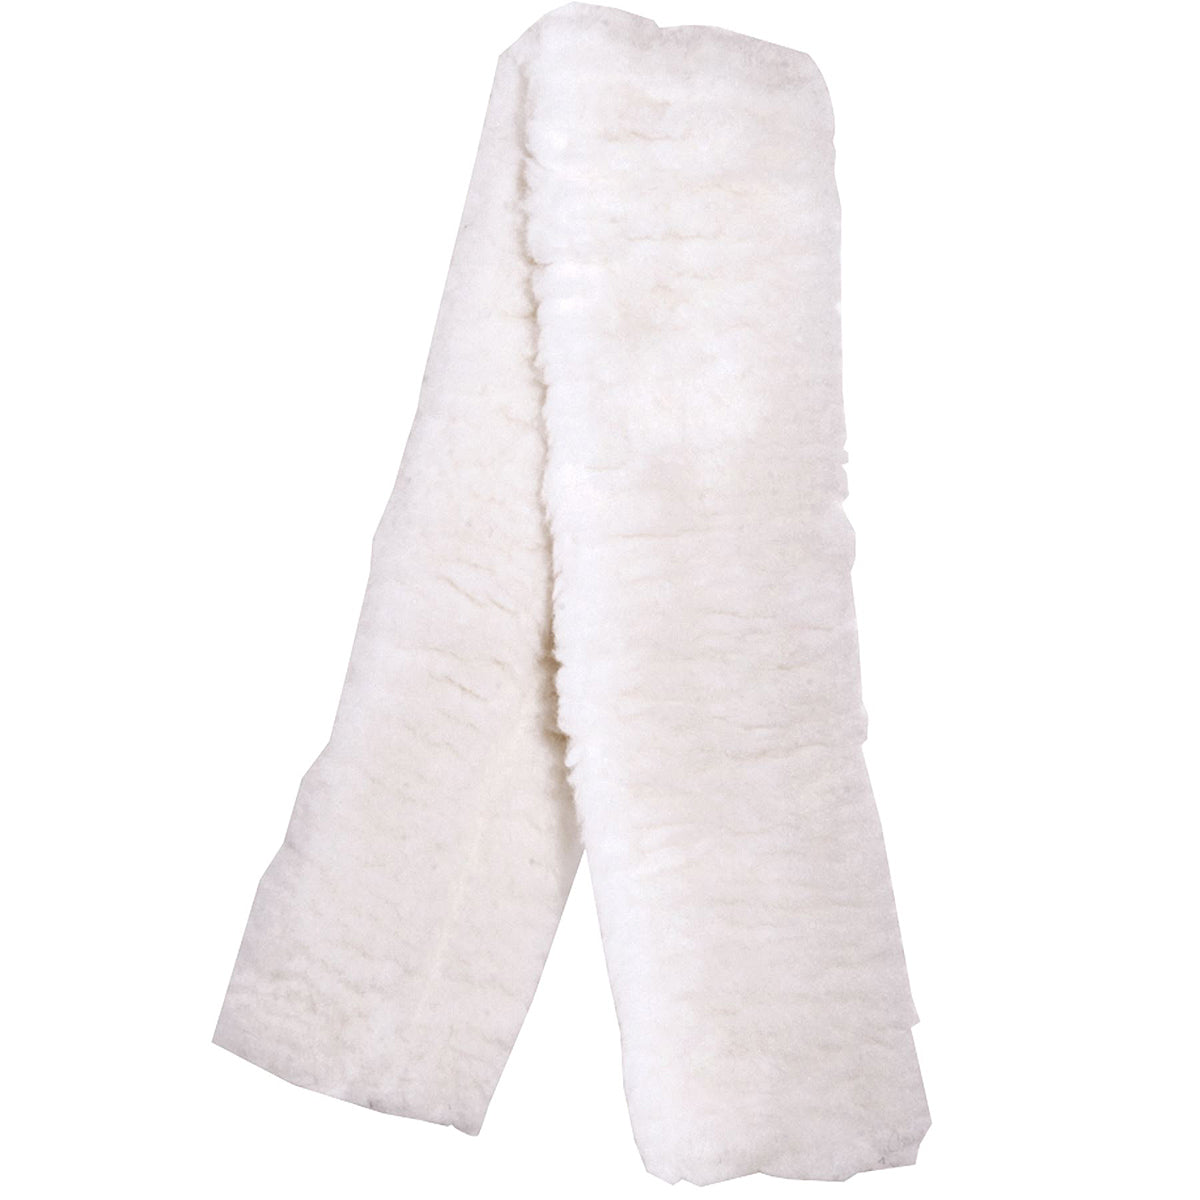 "Perri's English 36"" Fleece Girth Cover"